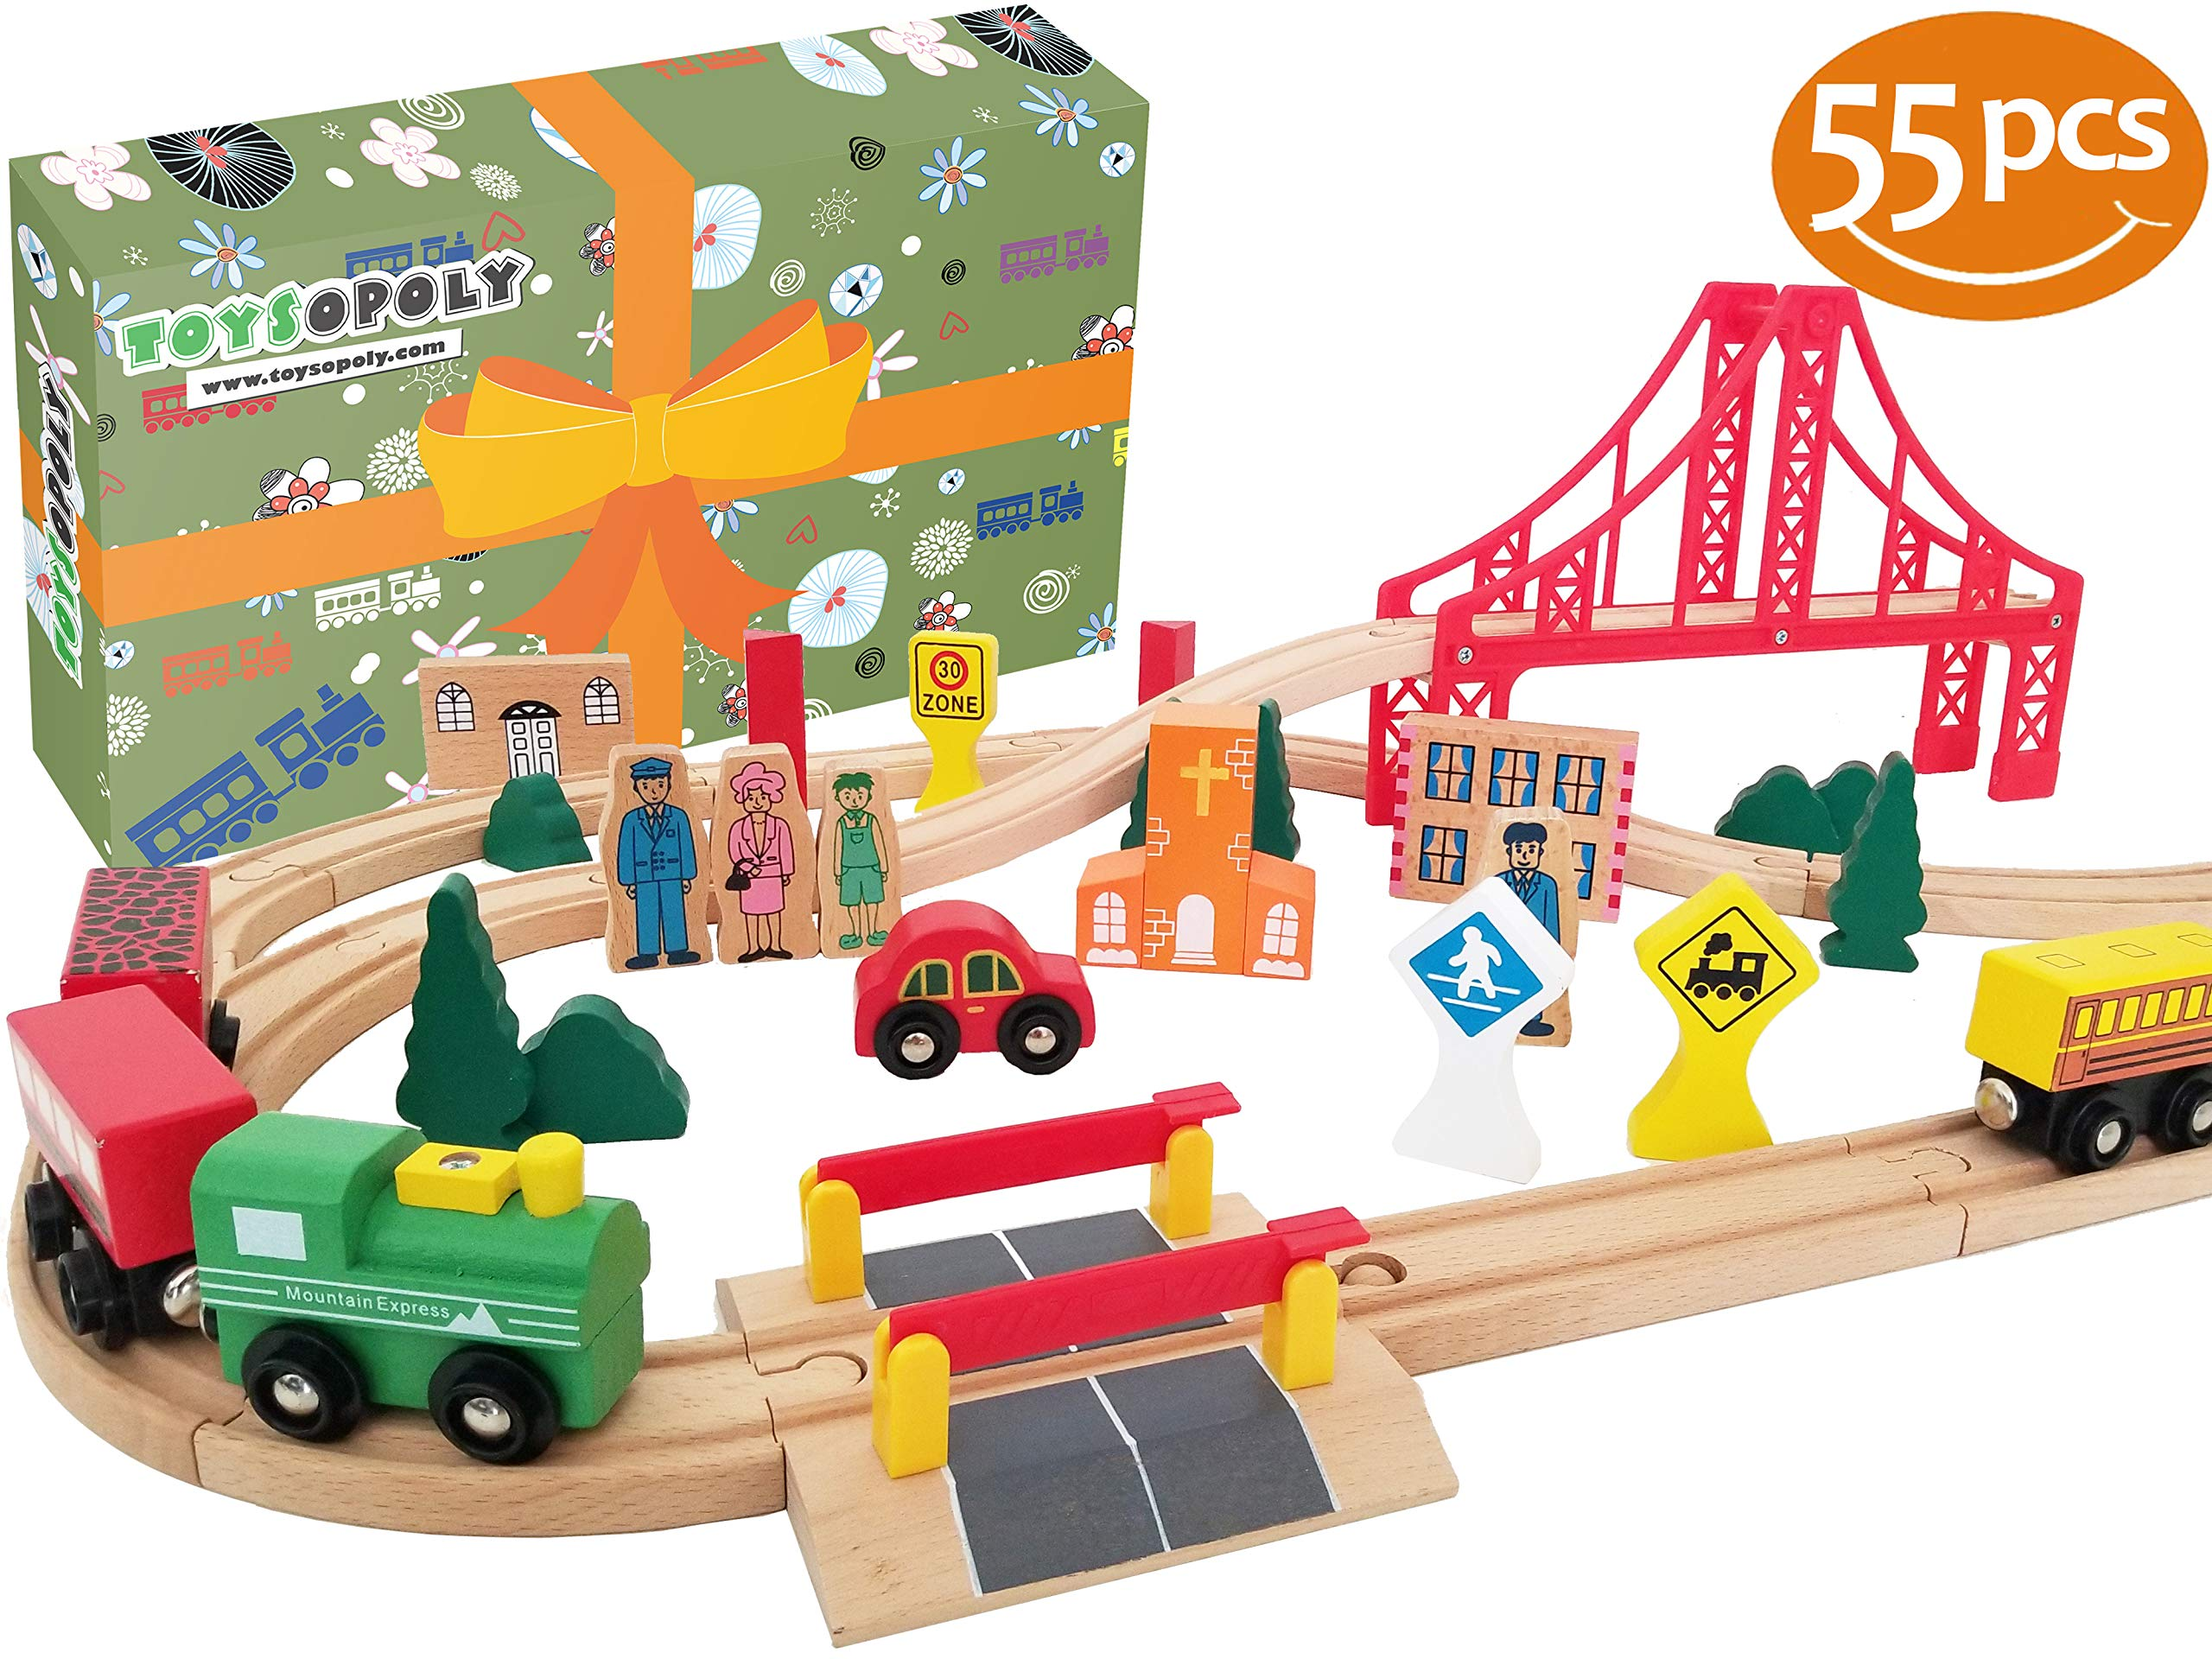 Flash Sale | Wooden Train Tracks, Deluxe 55 Pcs Set with 3 Destination Fits Thomas, Brio, IKEA, Chuggington, Imaginarium, Melissa and Doug - Best Gifts for Kids Toddler Boys and Girls